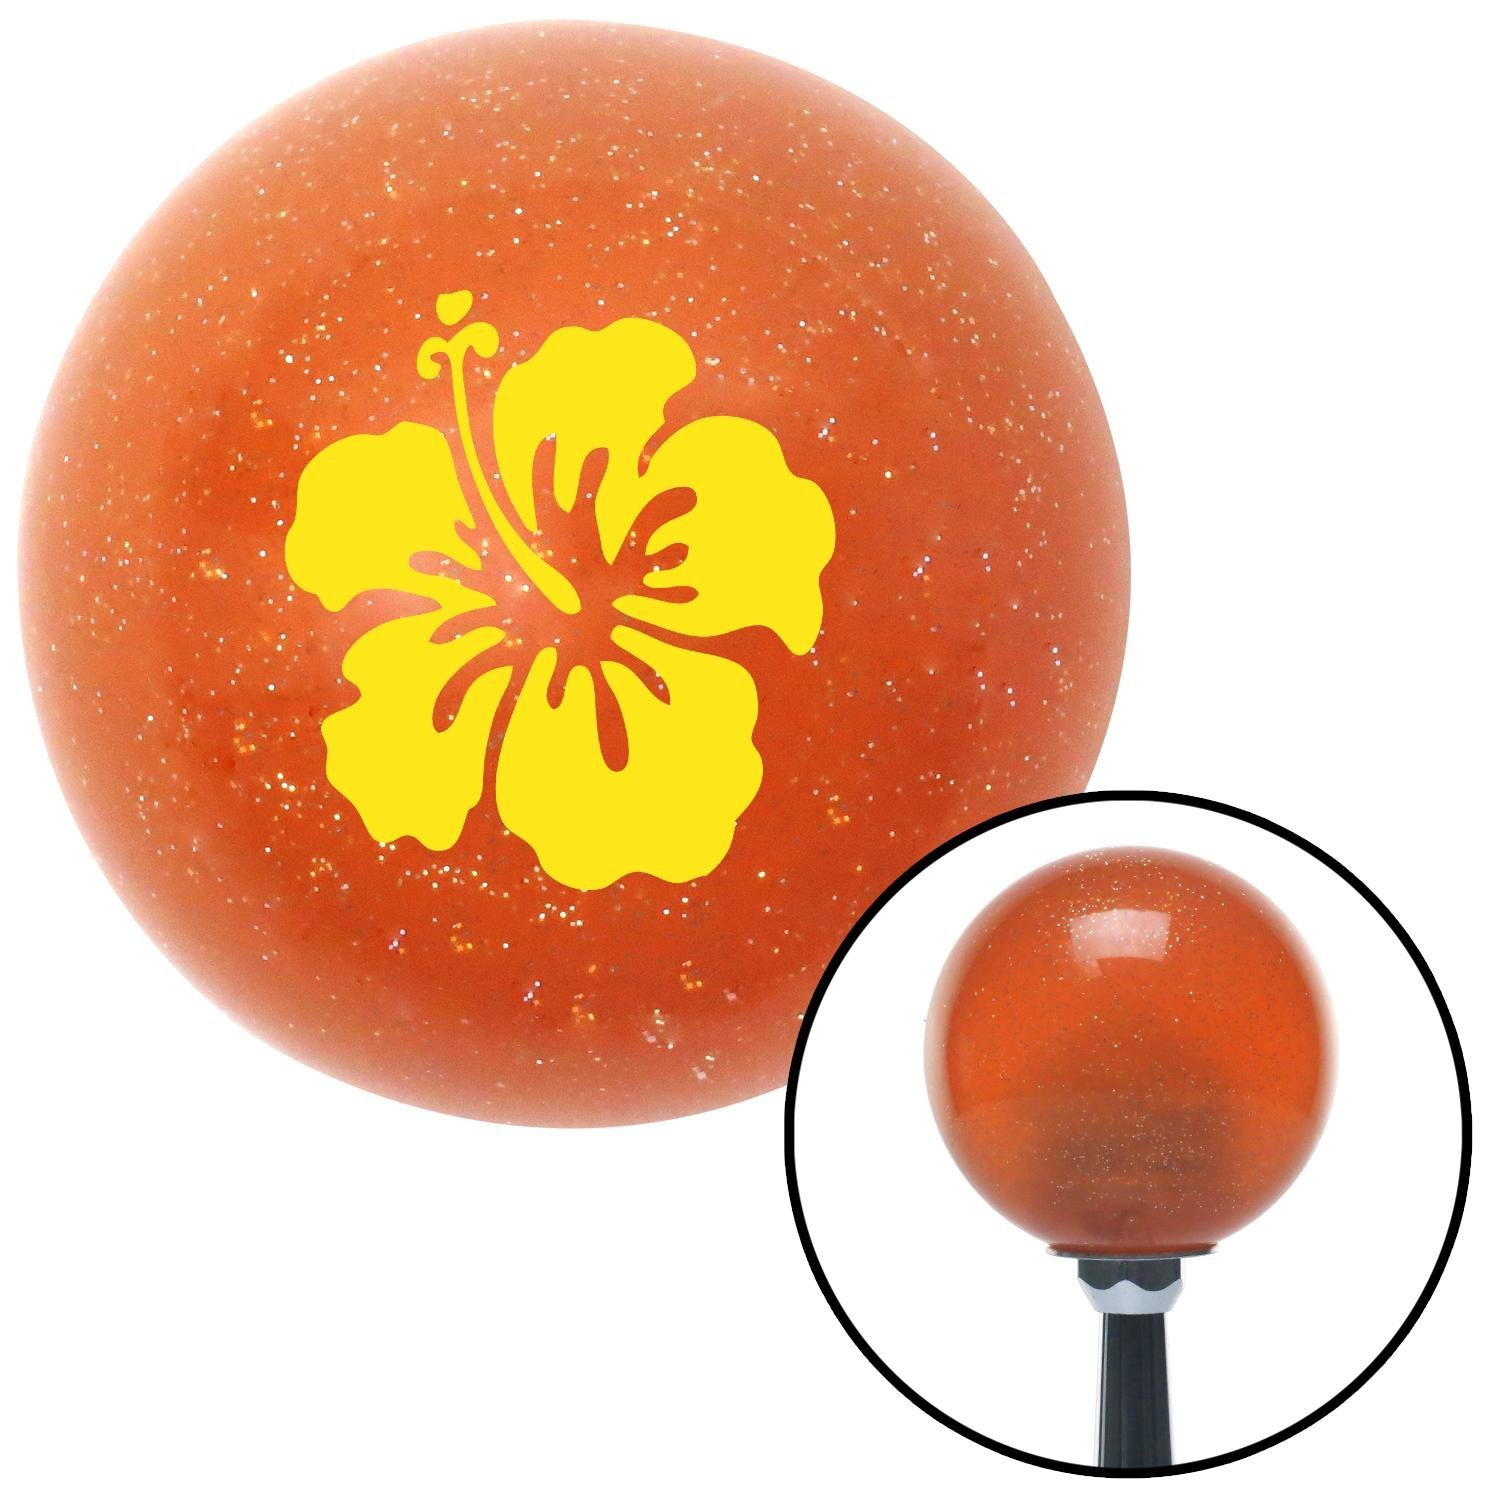 American Shifter 43646 Orange Metal Flake Shift Knob with 16mm x 1.5 Insert Yellow Hawaiian Flower #9